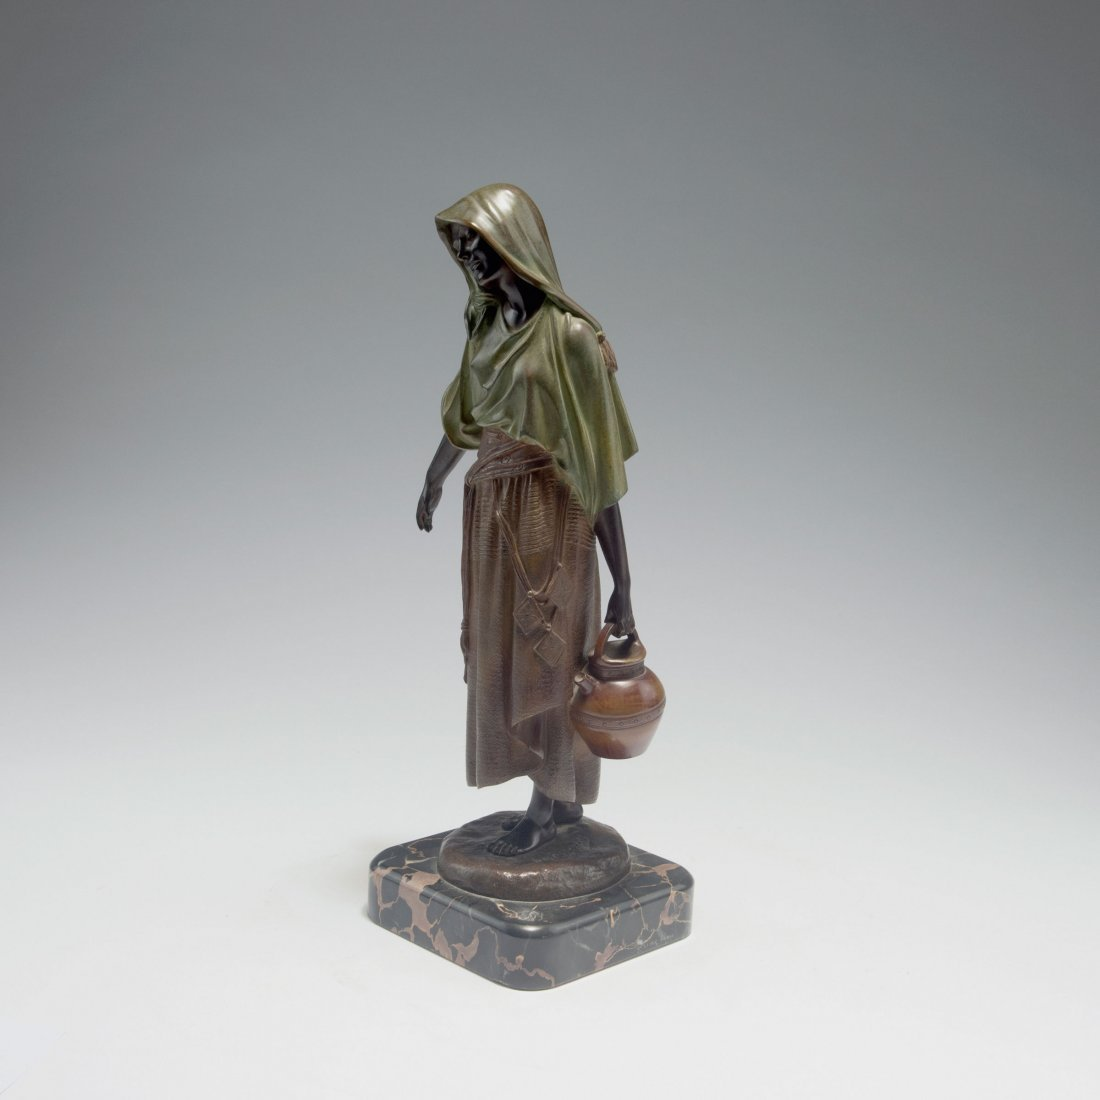 'Water carrier', c1920